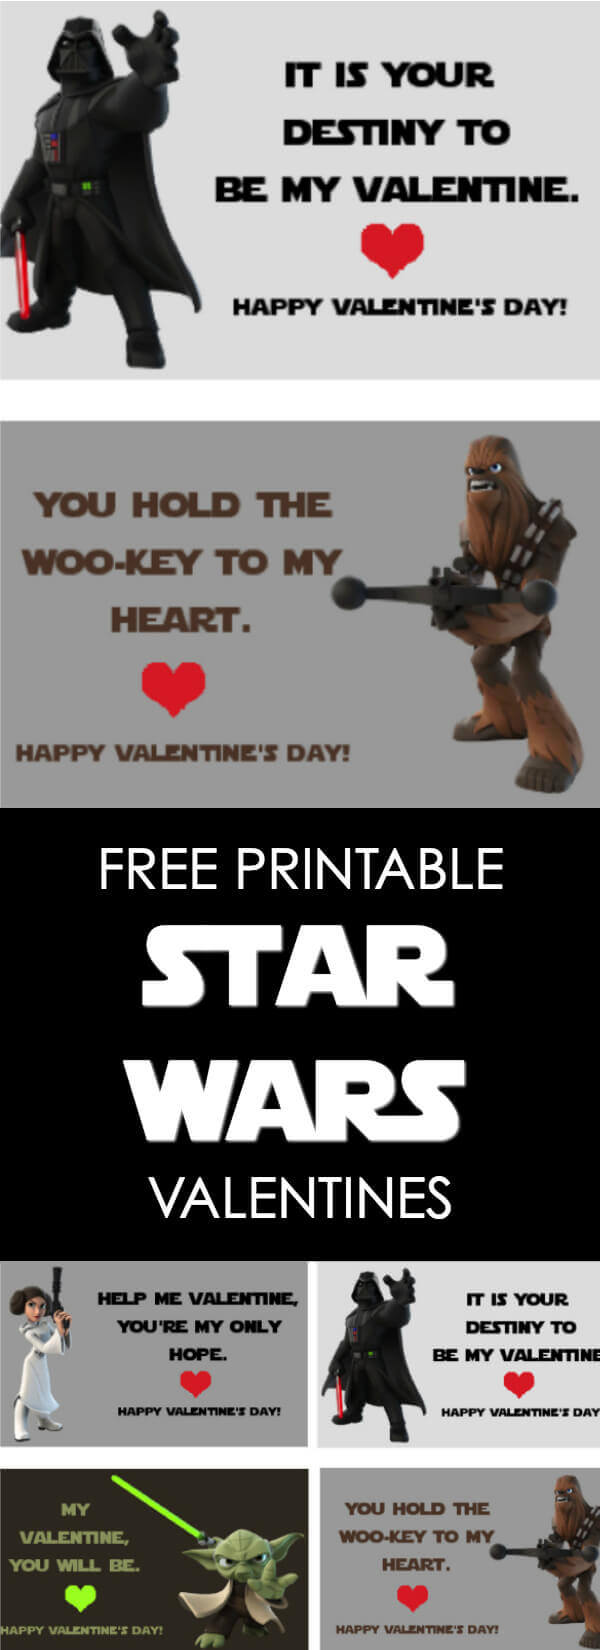 These Star Wars Valentines Printables are sure to be a hit in your kid's classroom this year!  All you need to do is print these free Star Wars Valentines cards, cut them to size and pass them out to your friends.  There are 4 fun designs. #Valentines #StarWars #Printables